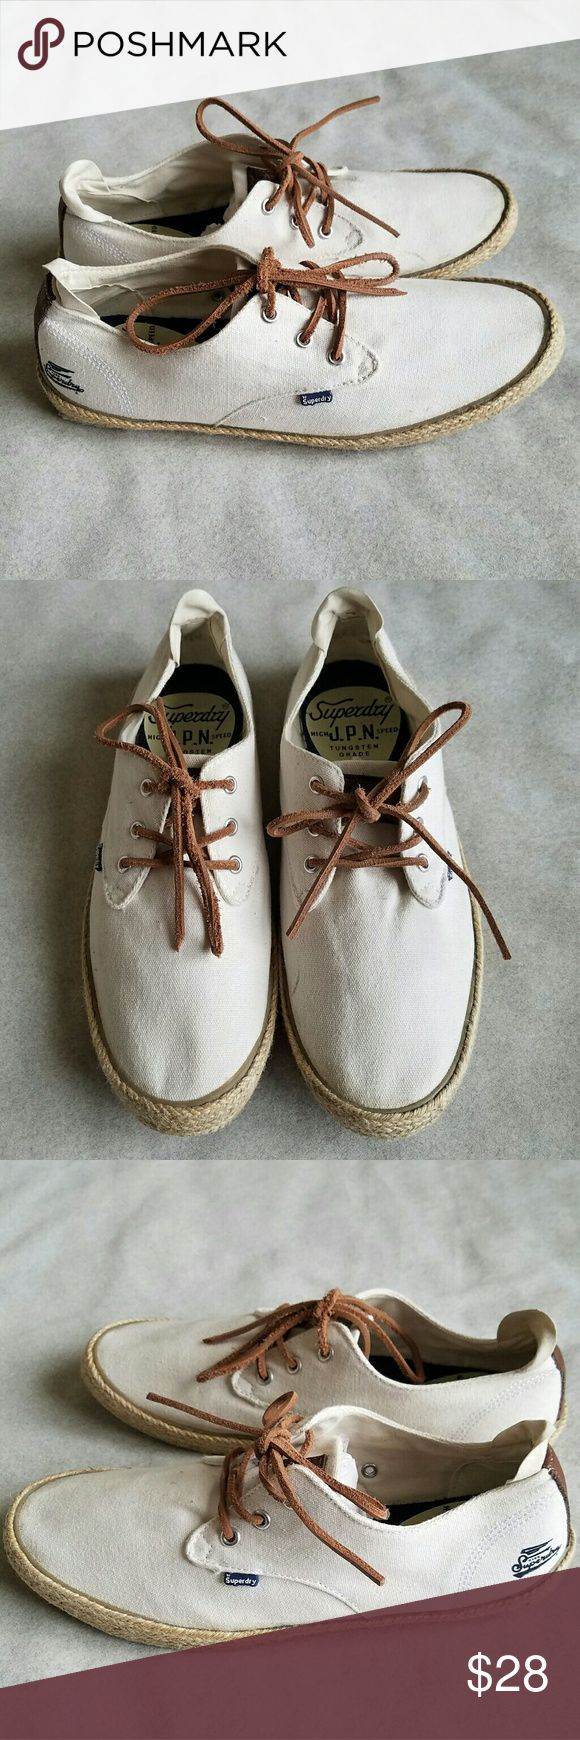 Men's Superdry Skipper Canvas Shoes Men's Superdry shoes with woven canvas upper. Leather cord laces with metal eyelets.  Espadrille sole with rubber tread.   Color is off white. Men's US size 10.   Excellent pre-owned owned condition. Minimal wear on soles. Superdry Shoes